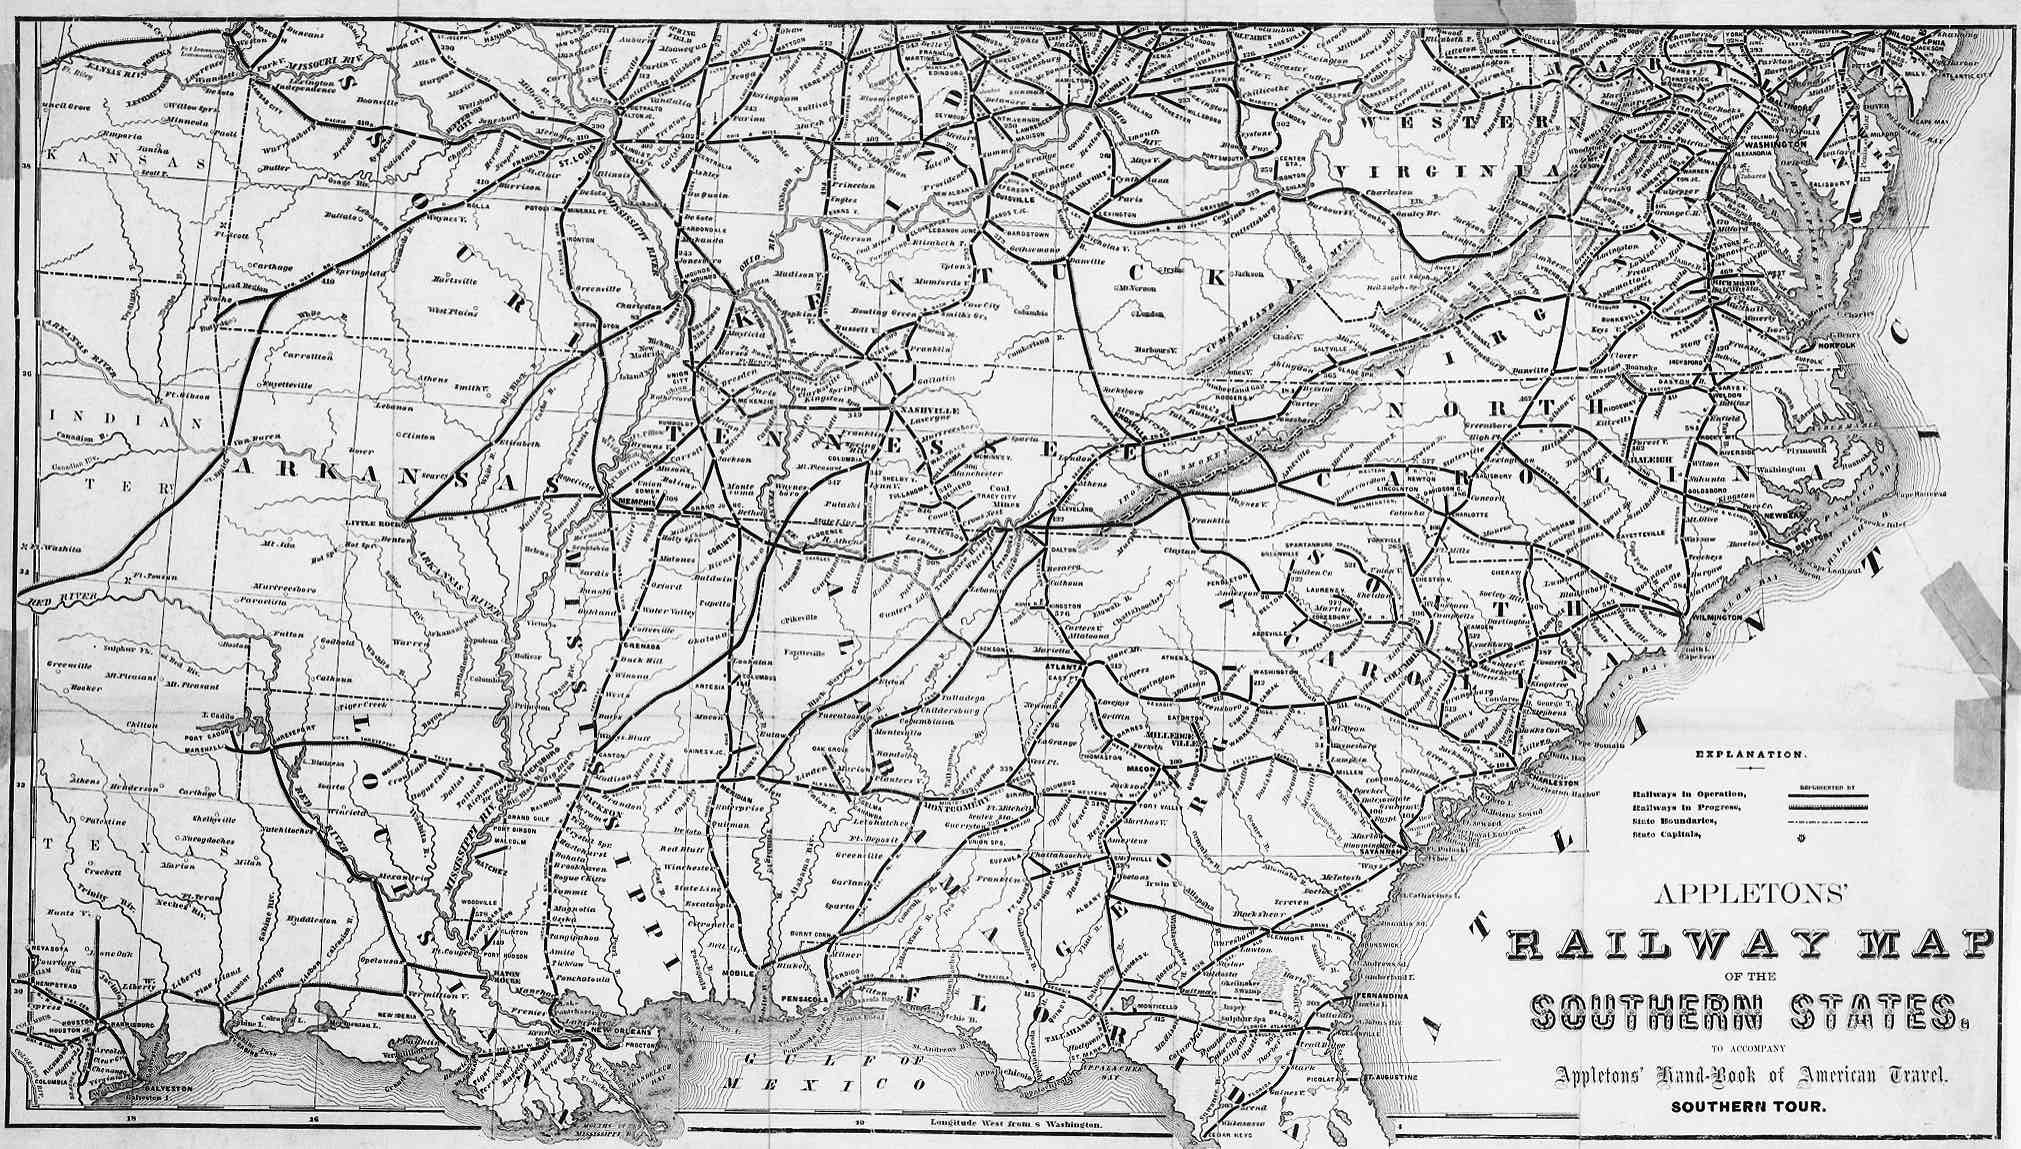 Southern US States Railway Map US Mappery - Map of us railways